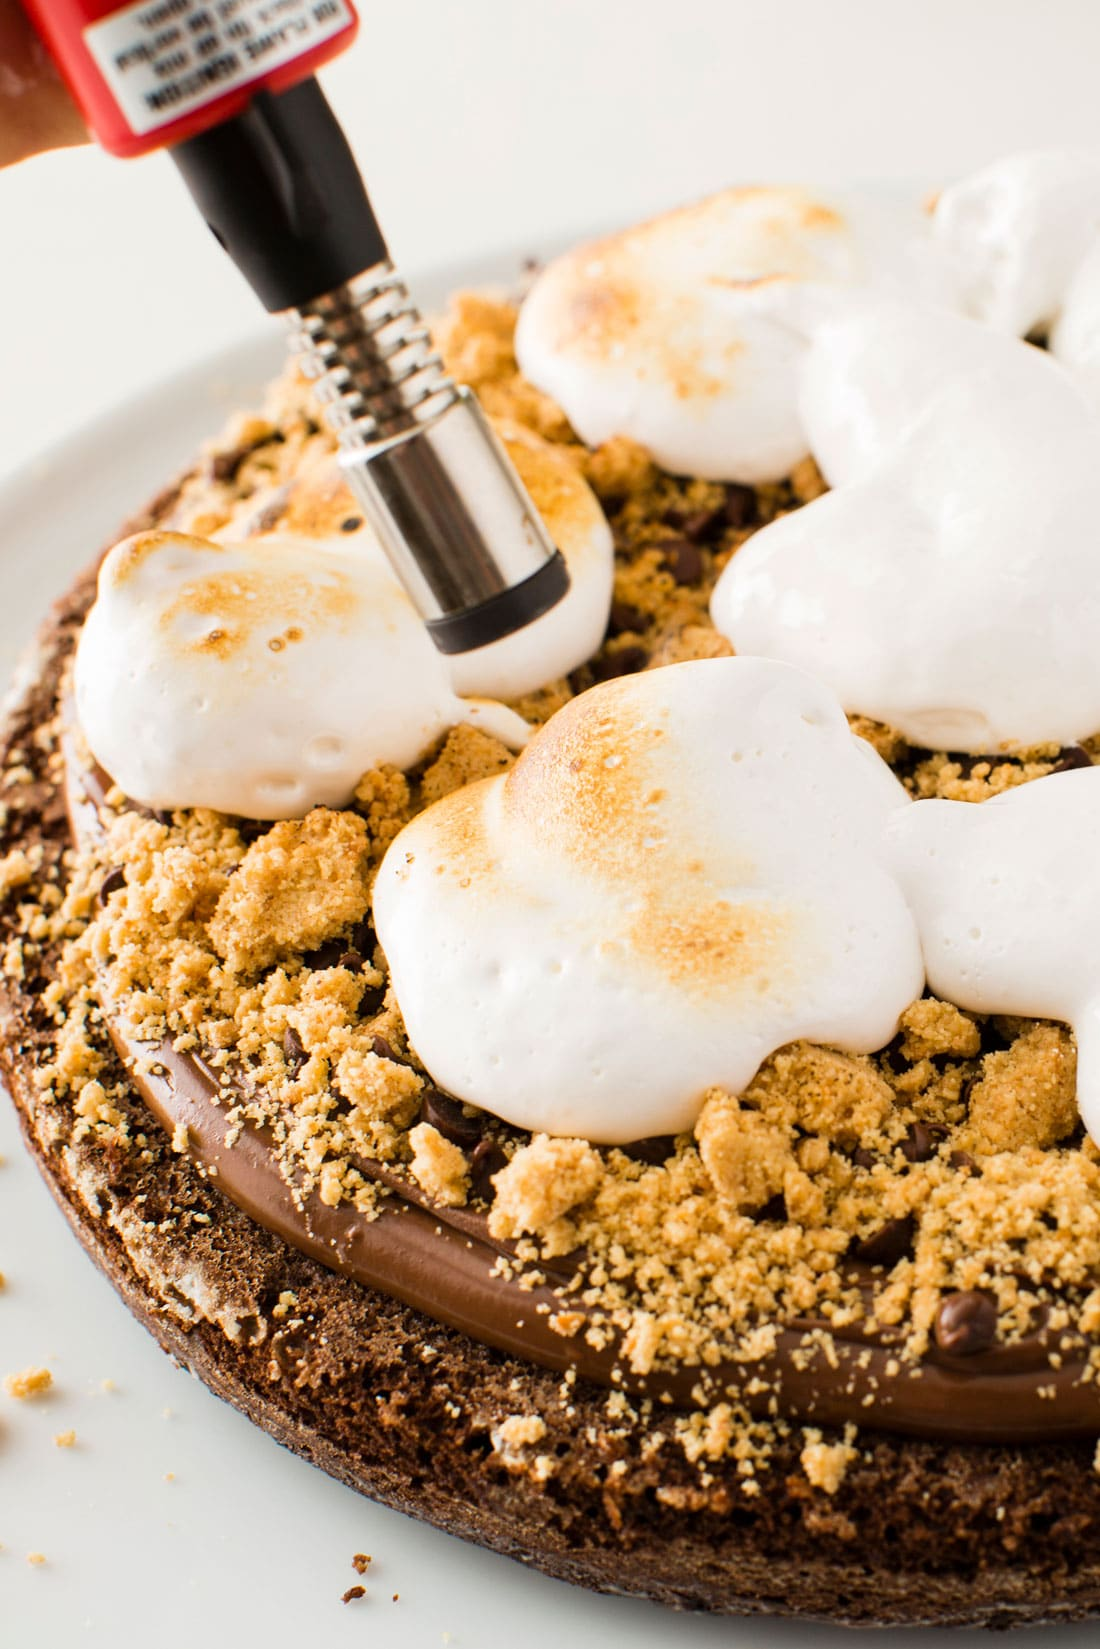 Closeup image of marshmallows on top of Miss Jones Baking Co Salted Nutella S'more Cake